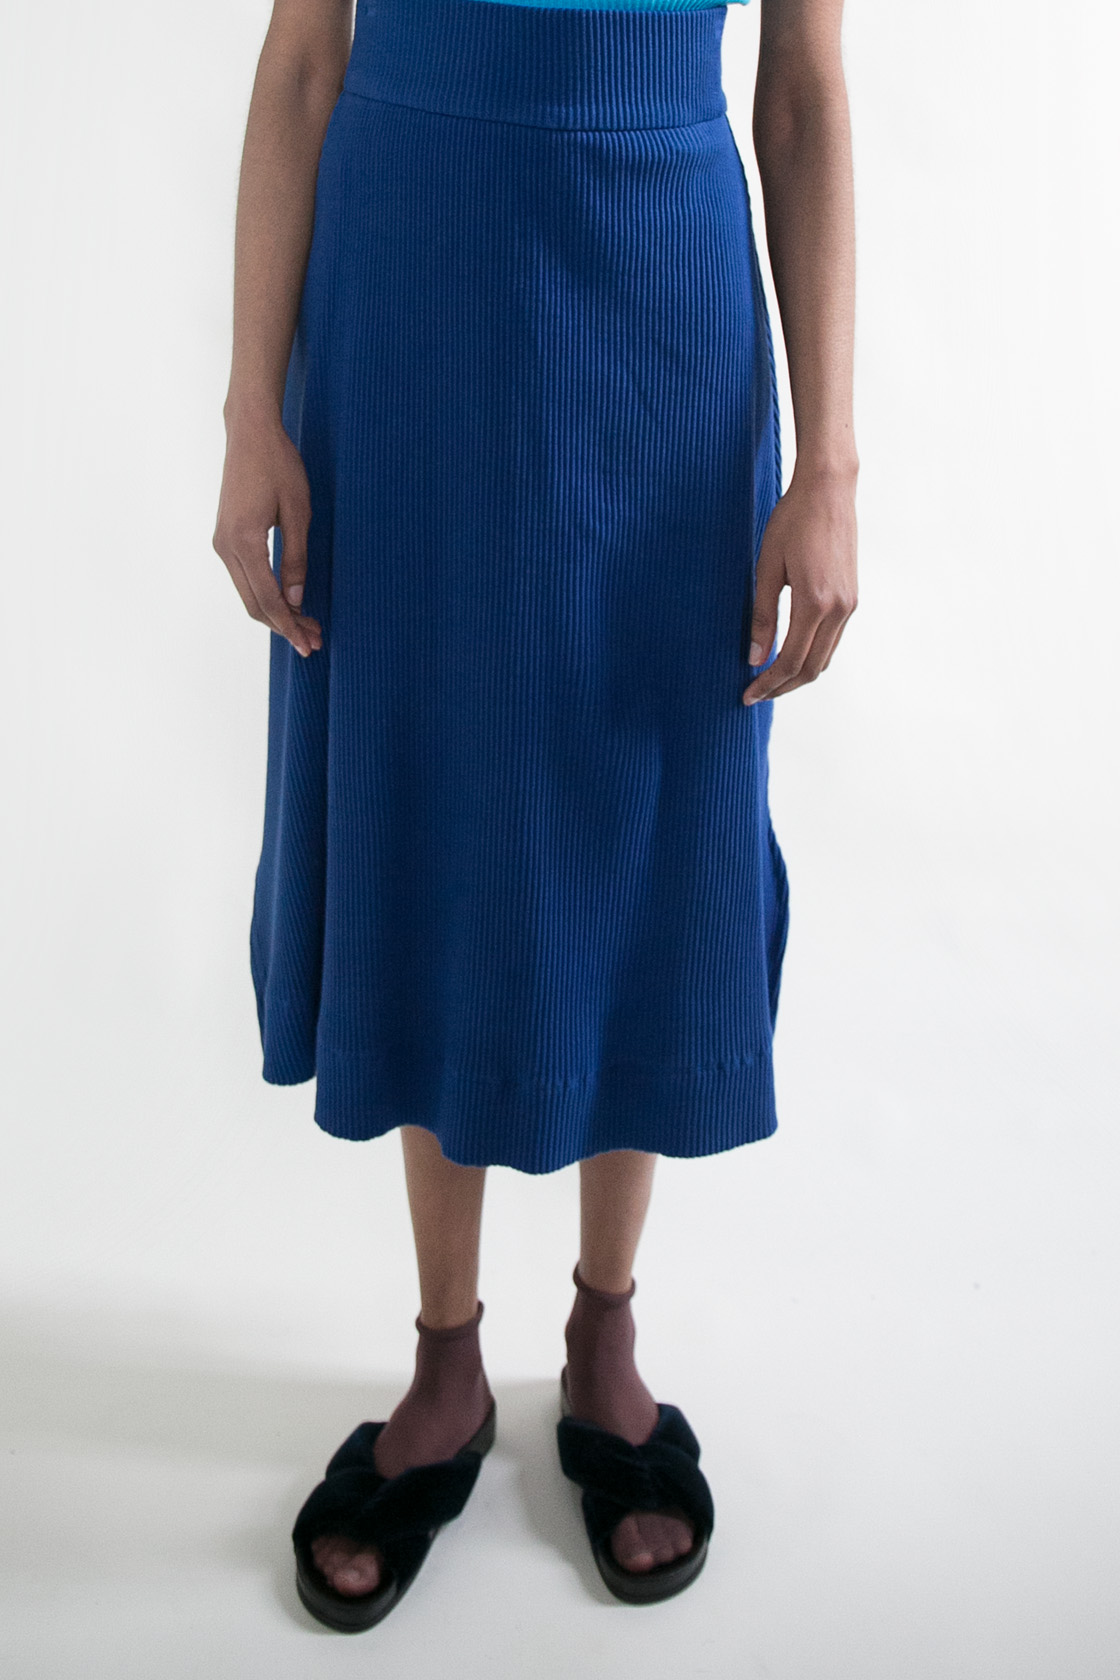 Basic Color Skirt in Cobalt  XS S M L  $225